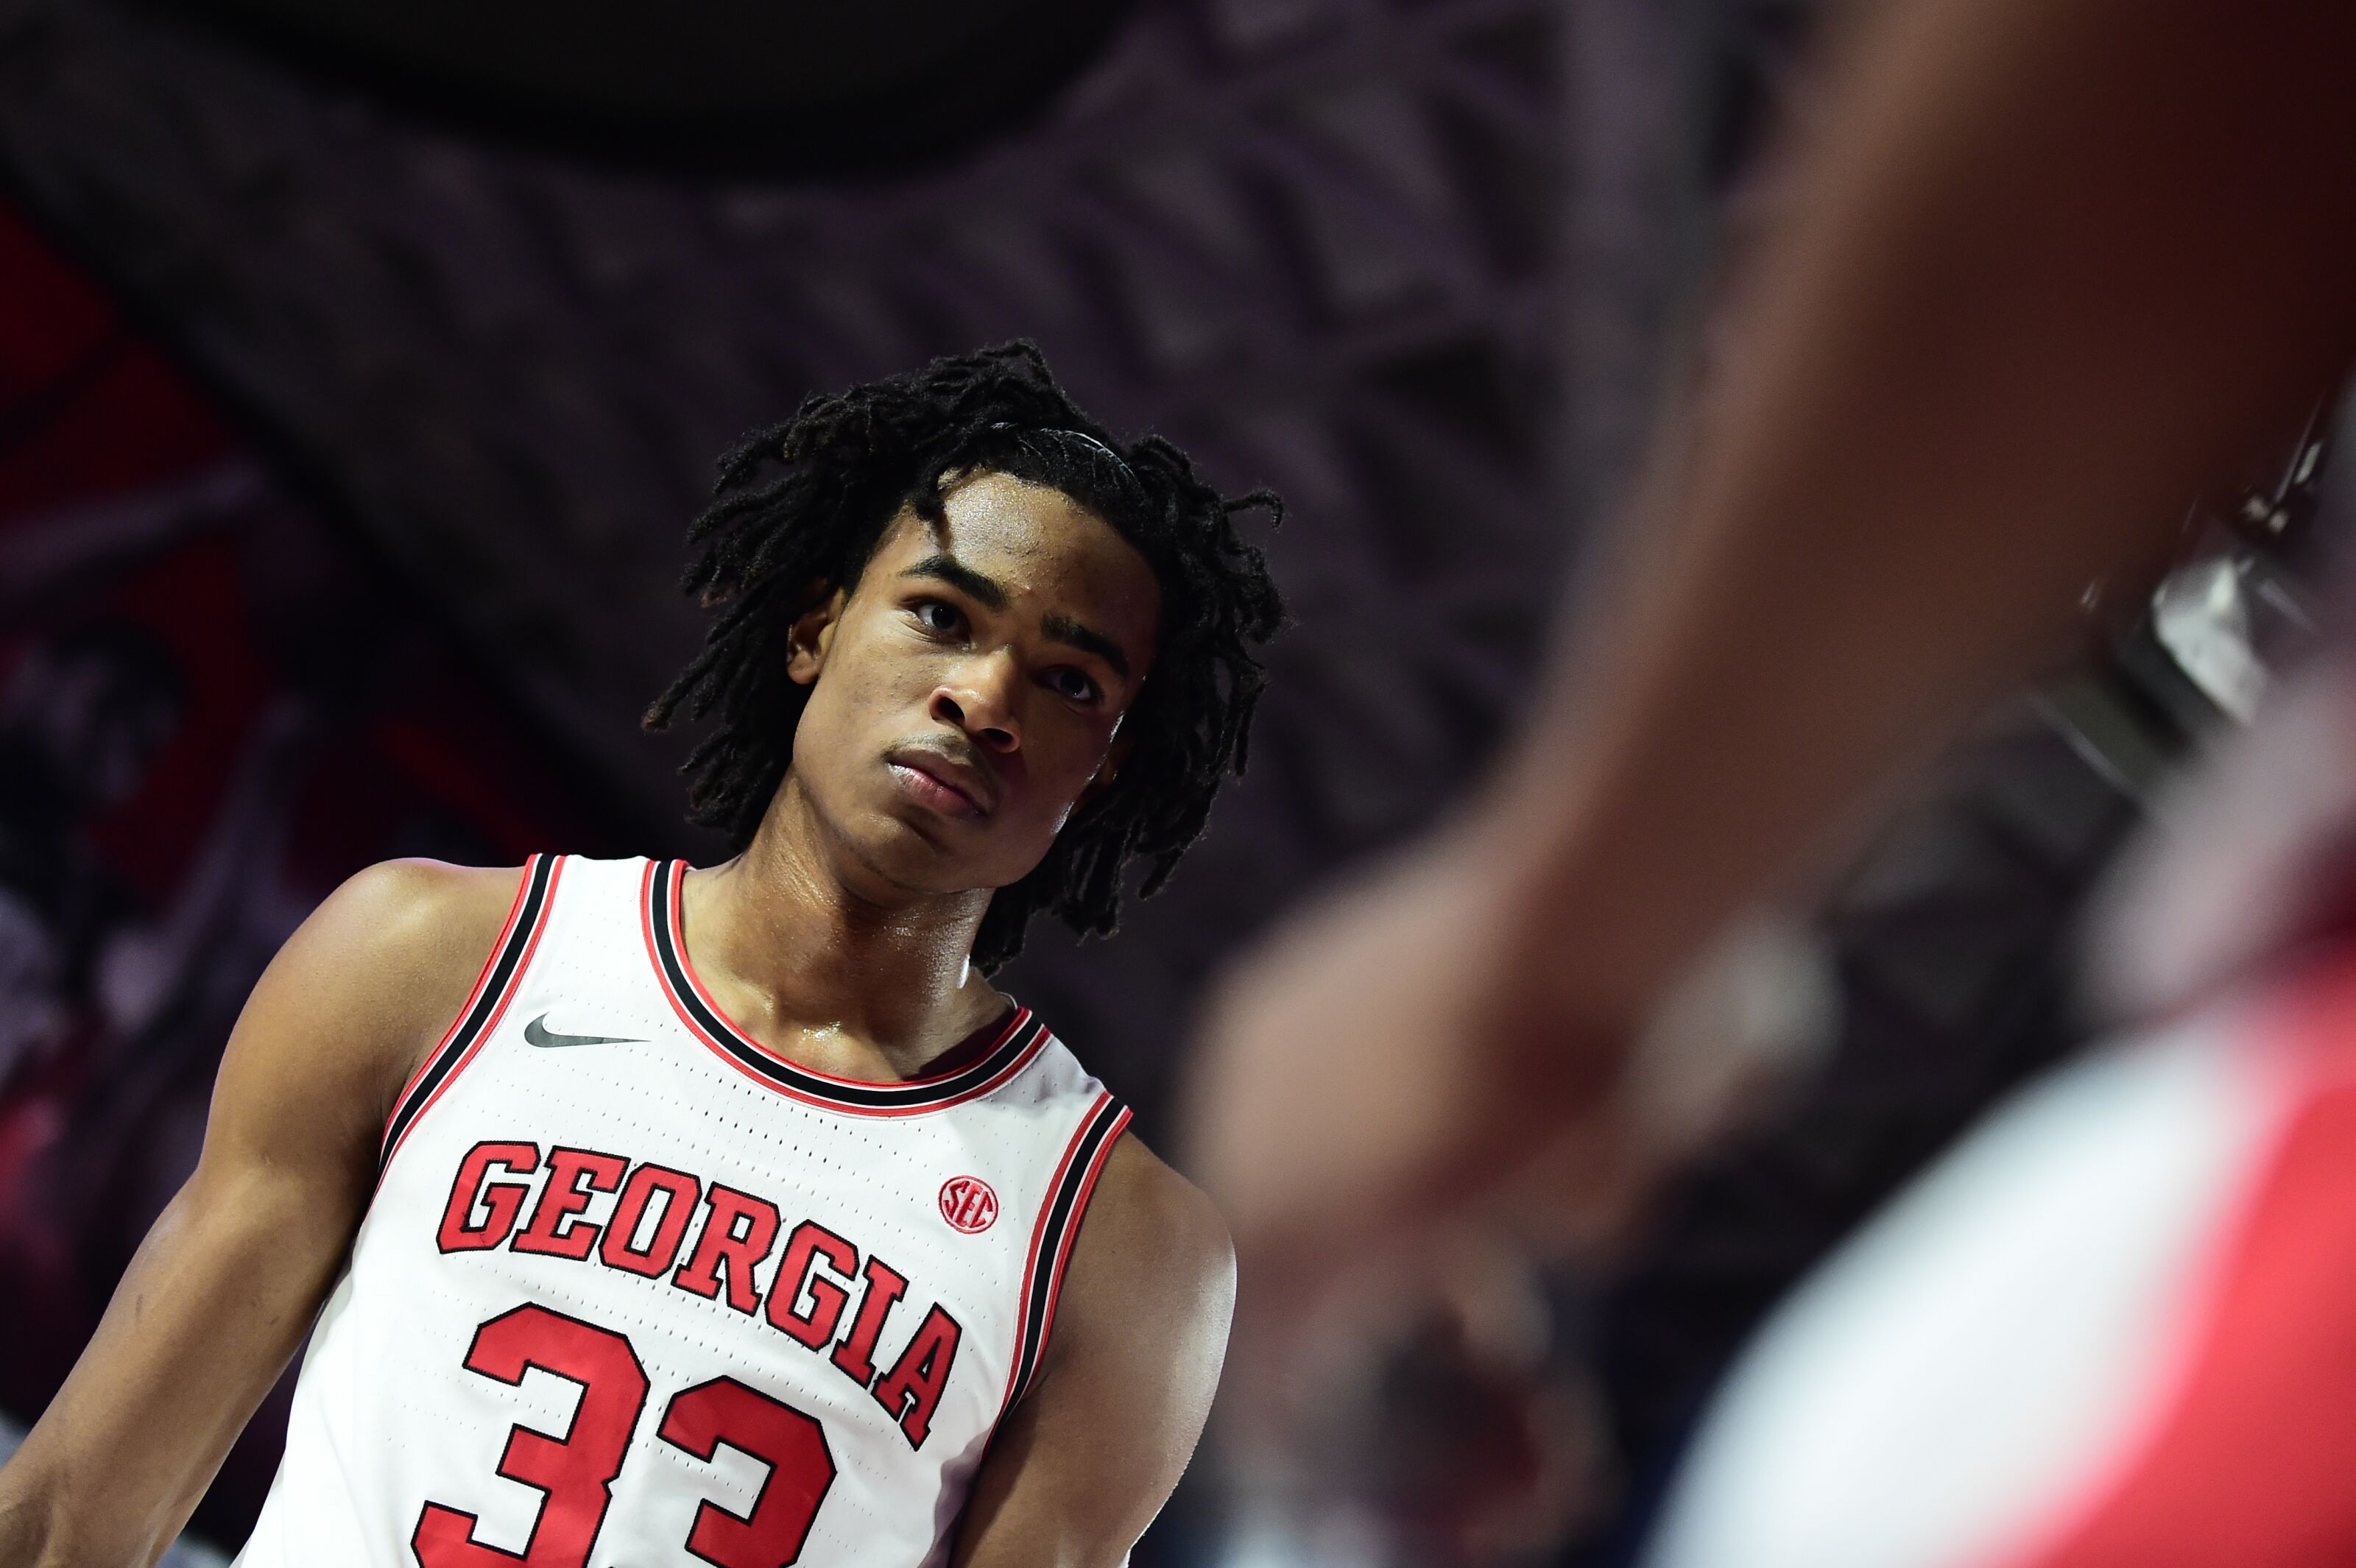 2019 NBA Draft: For Atlanta Hawks, Nicolas Claxton Could Be a Steal